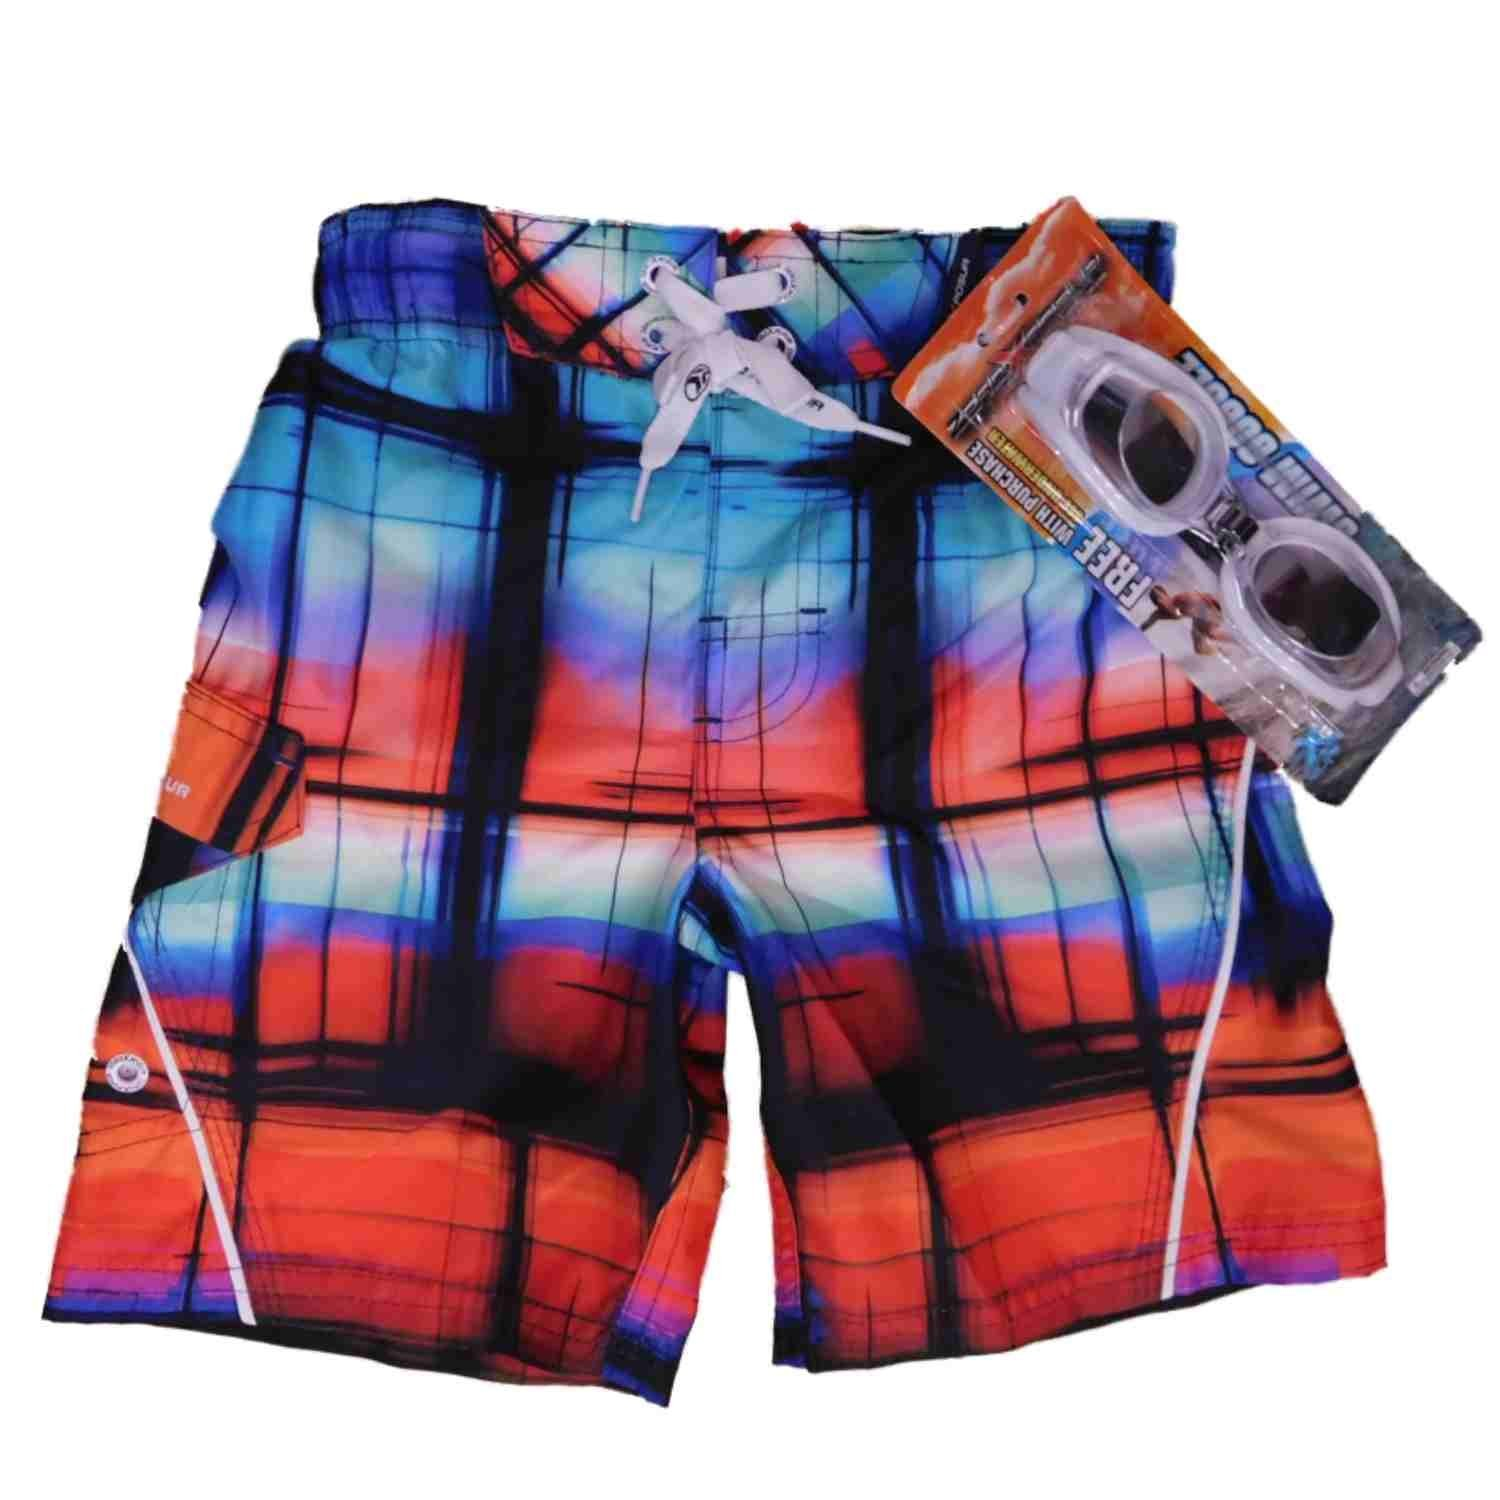 25ebece0d6 Get Quotations · ZeroXposur Boys Colorful Plaid Cargo Swim Trunks Board  Shorts